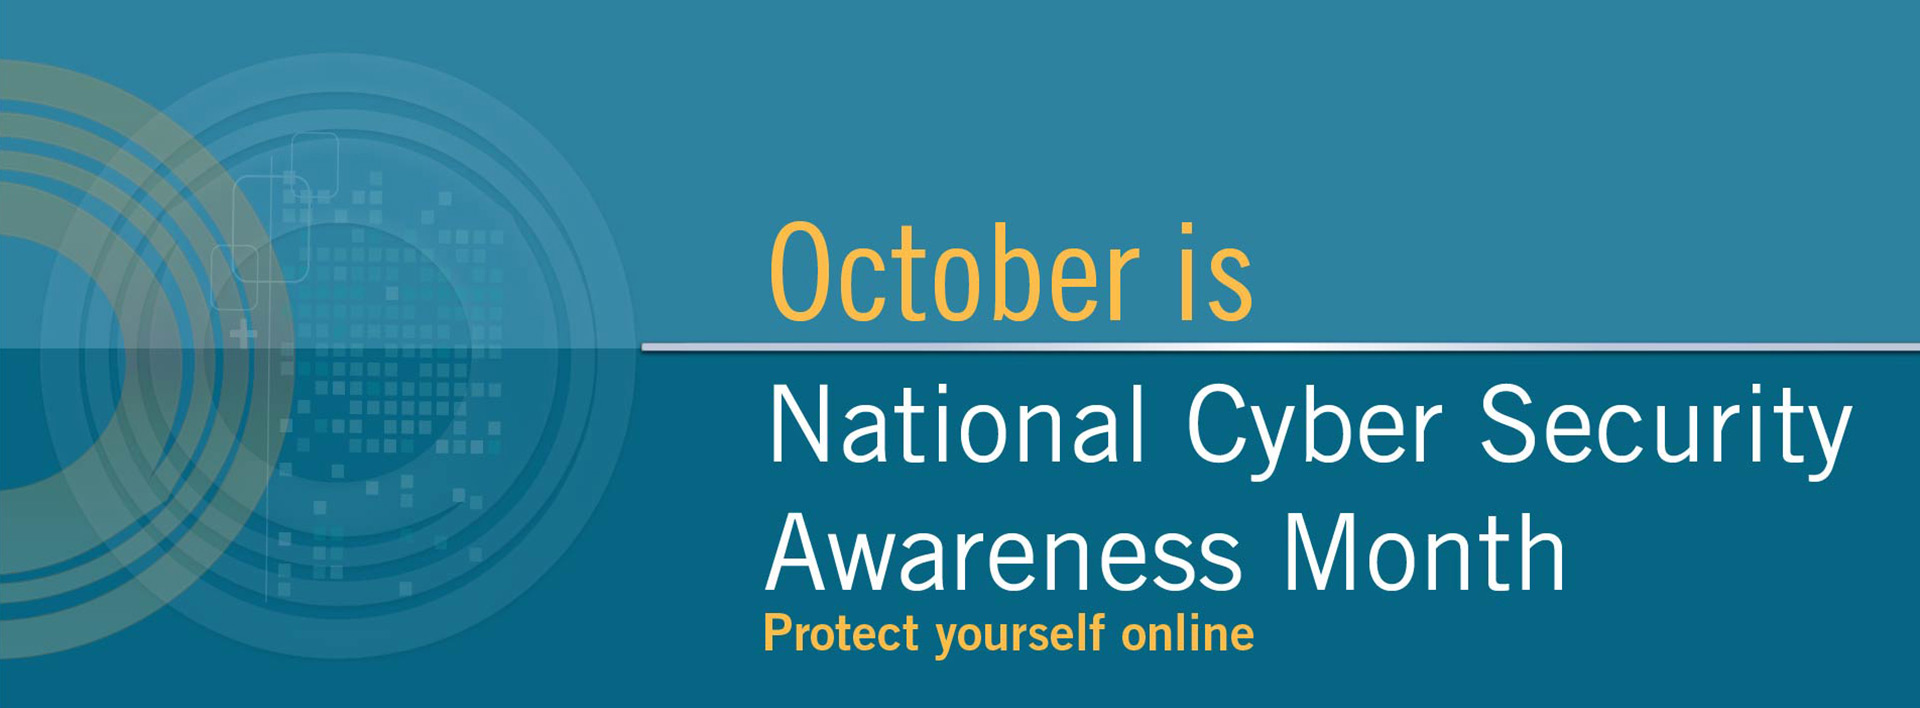 October is National Cyber Security Awareness Month banner